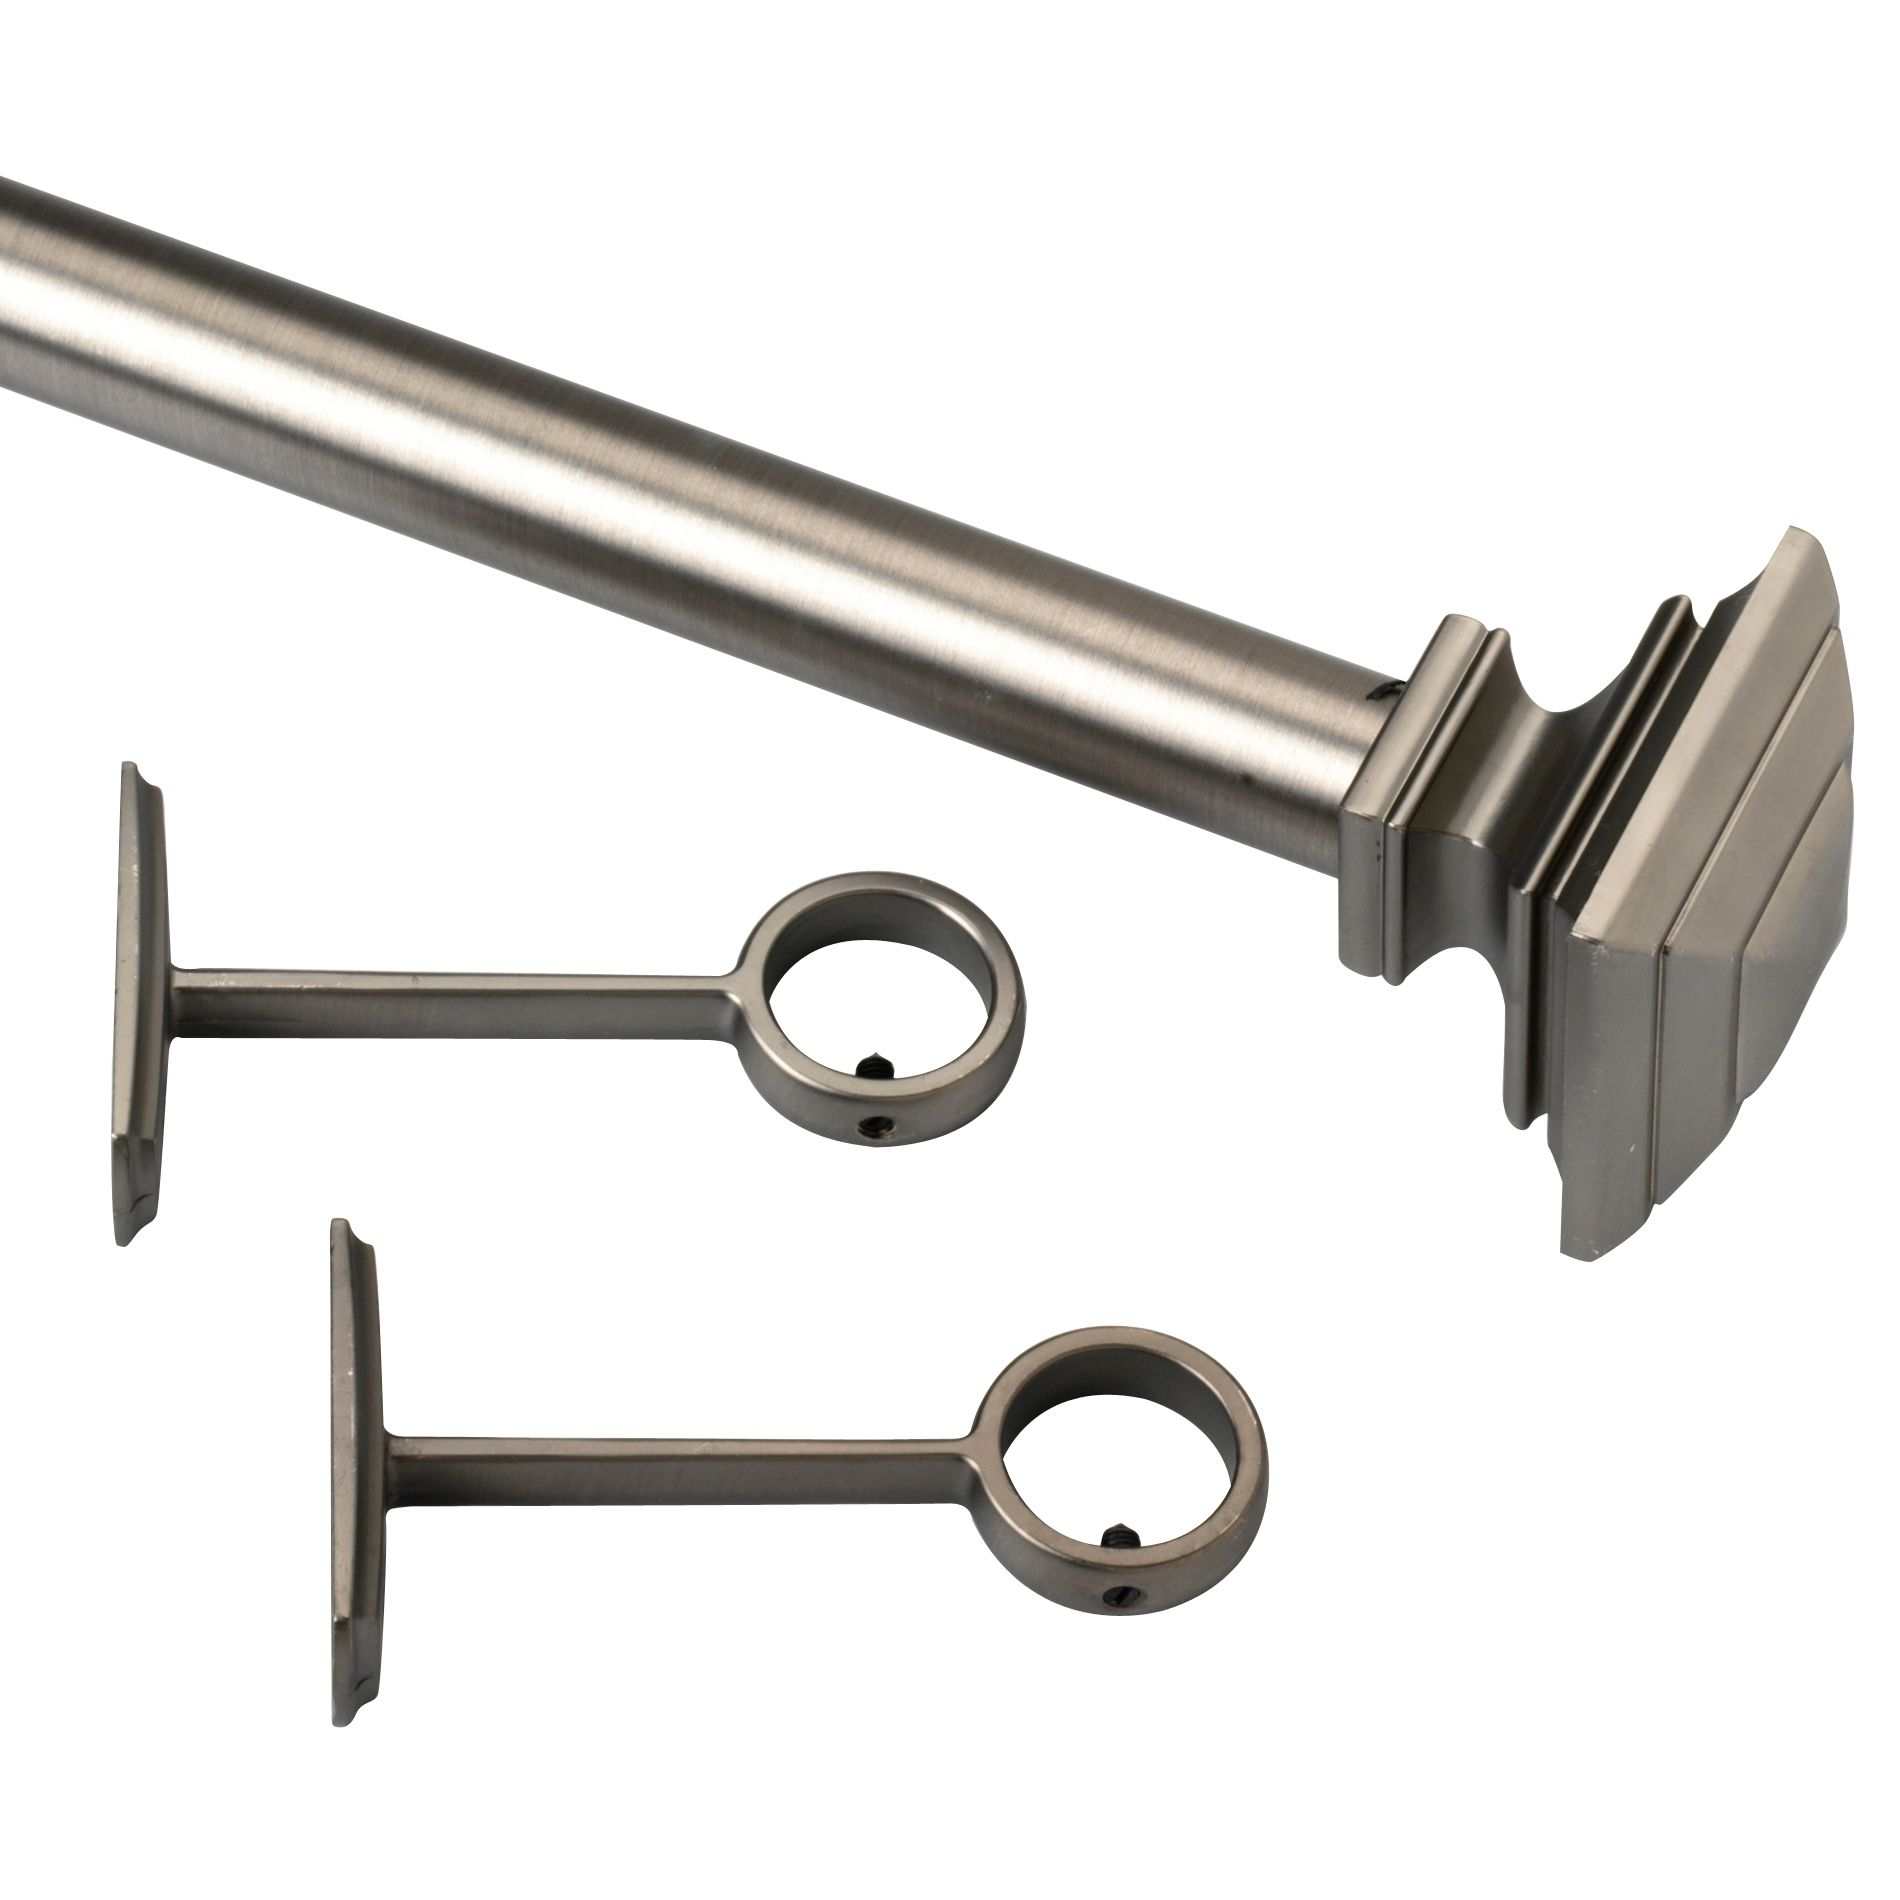 Home Hardware Windows Window Treatment Hardware Buy Window Treatment Hardware